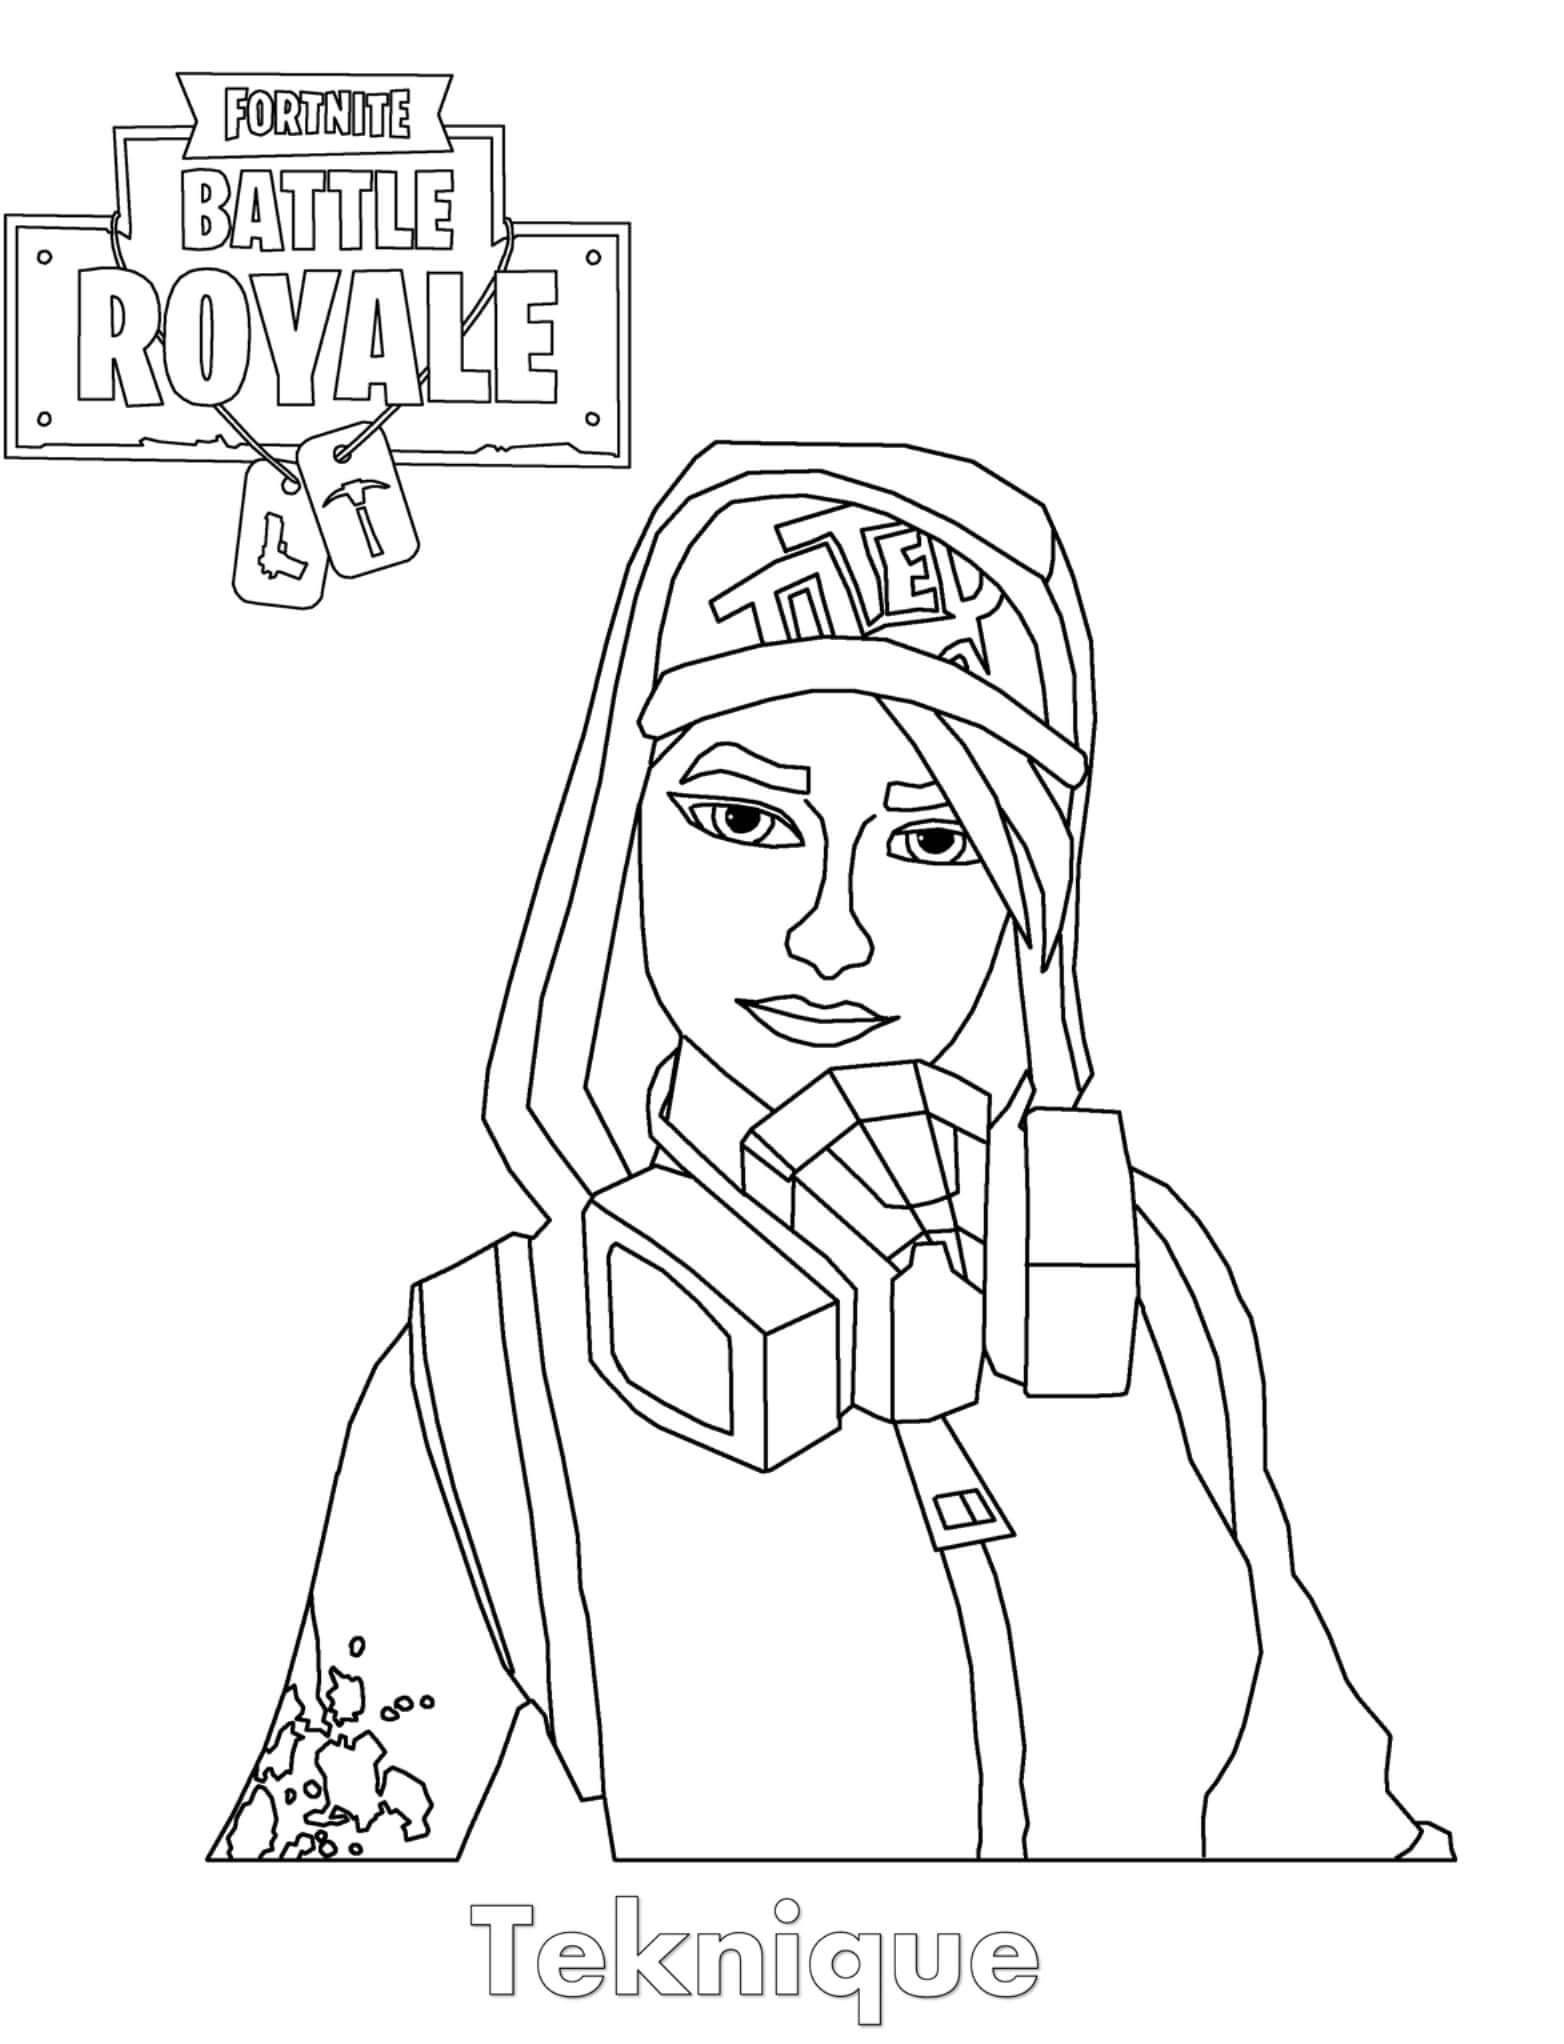 Fortnite Galaxy Skin Coloring Pages